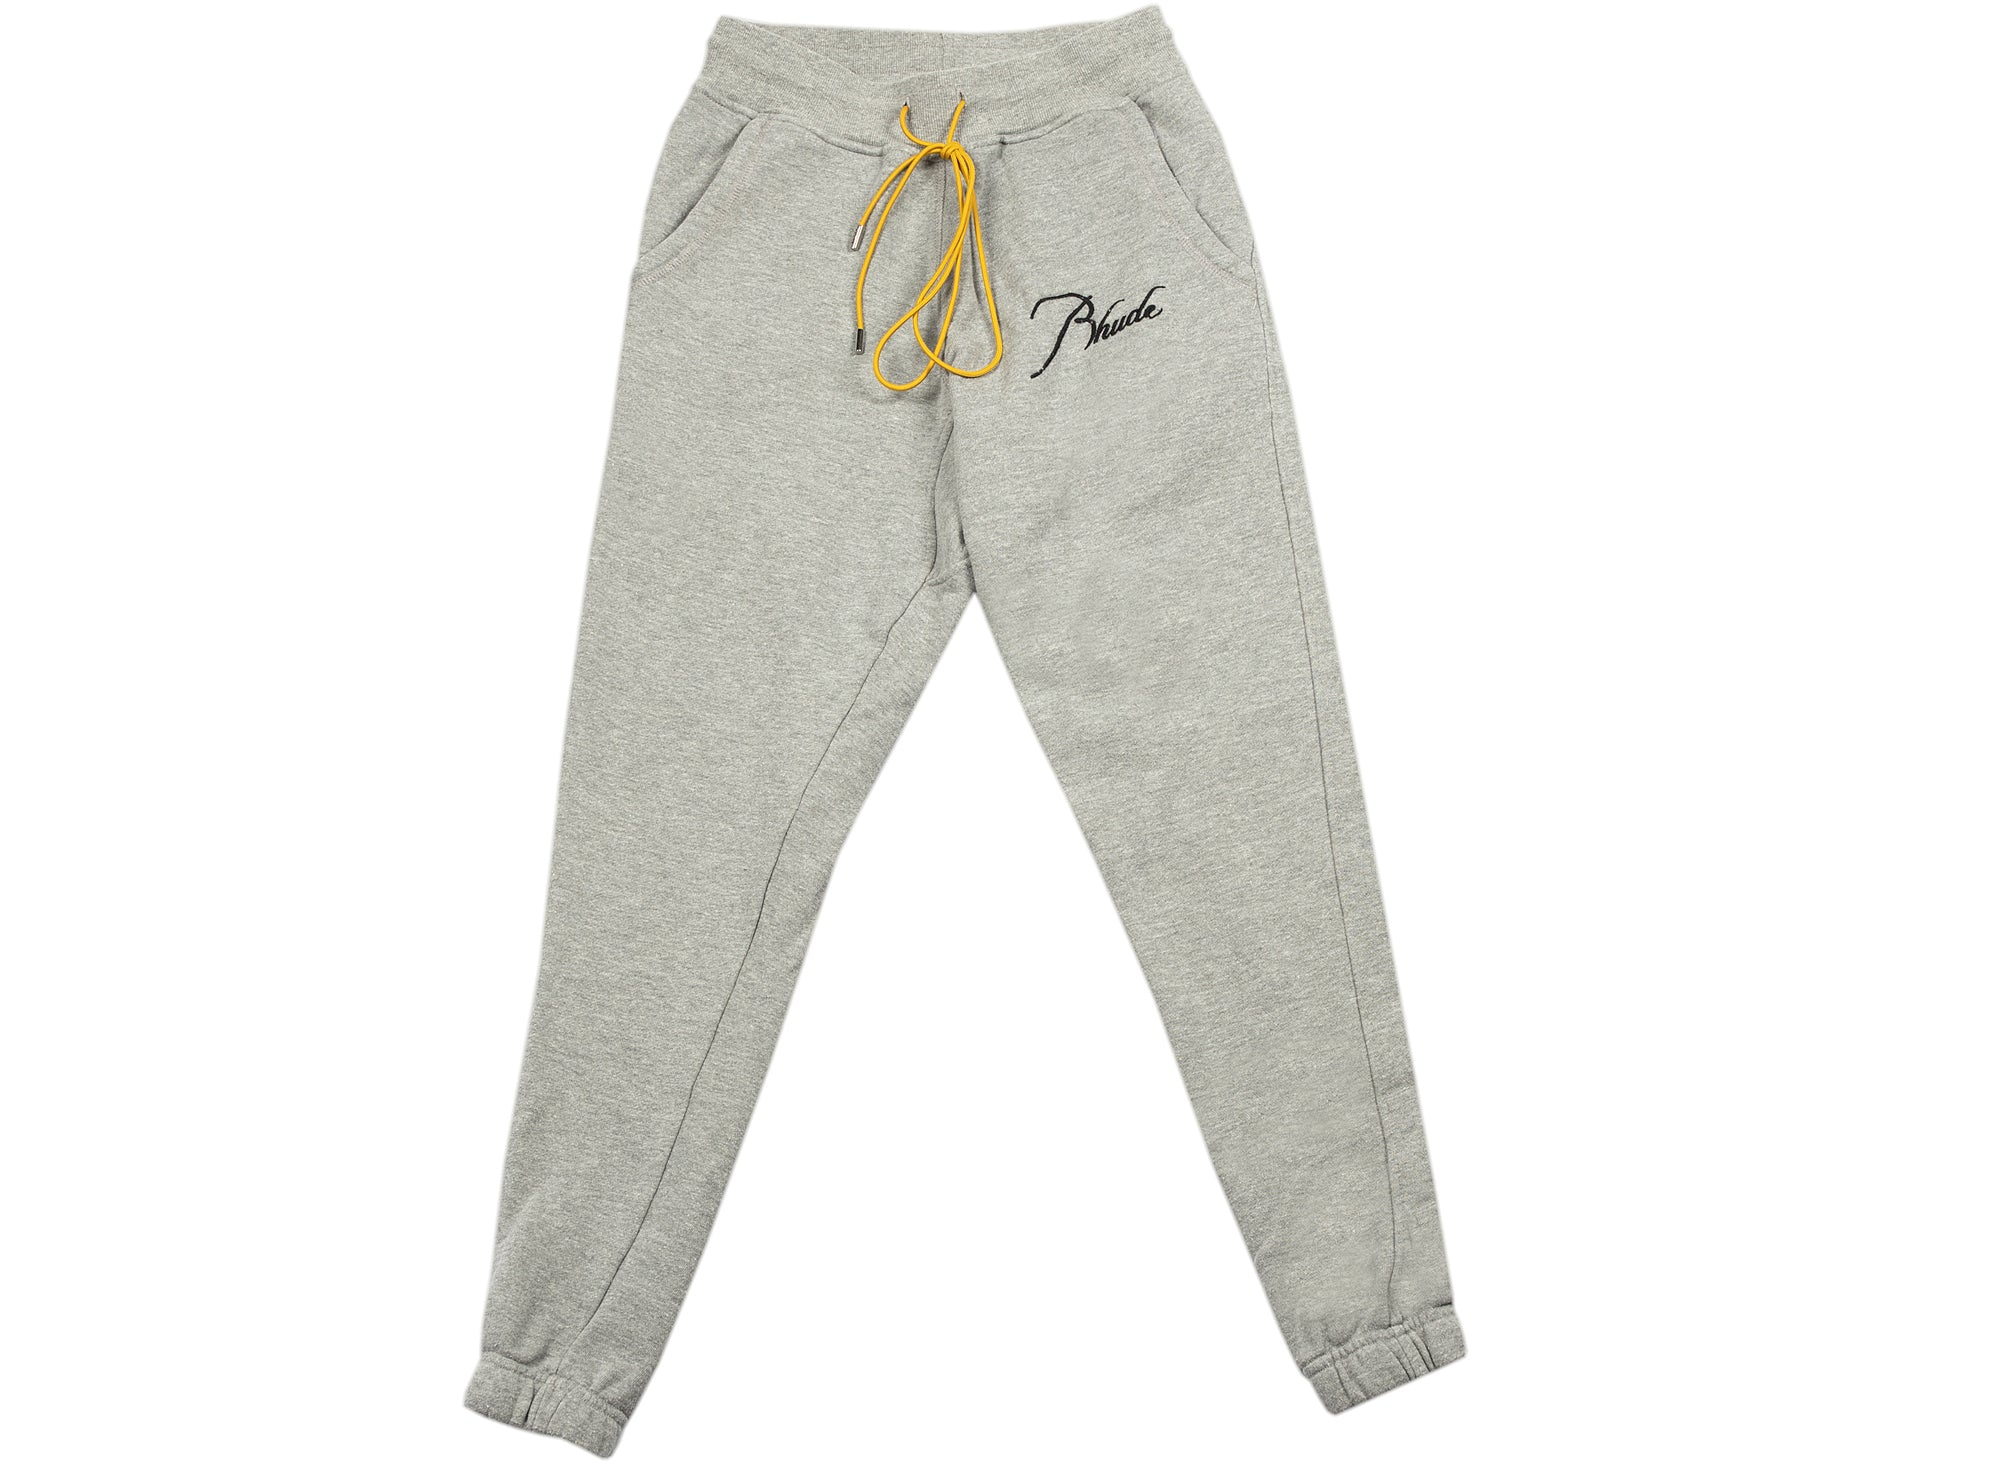 Rhude Lounge Pants